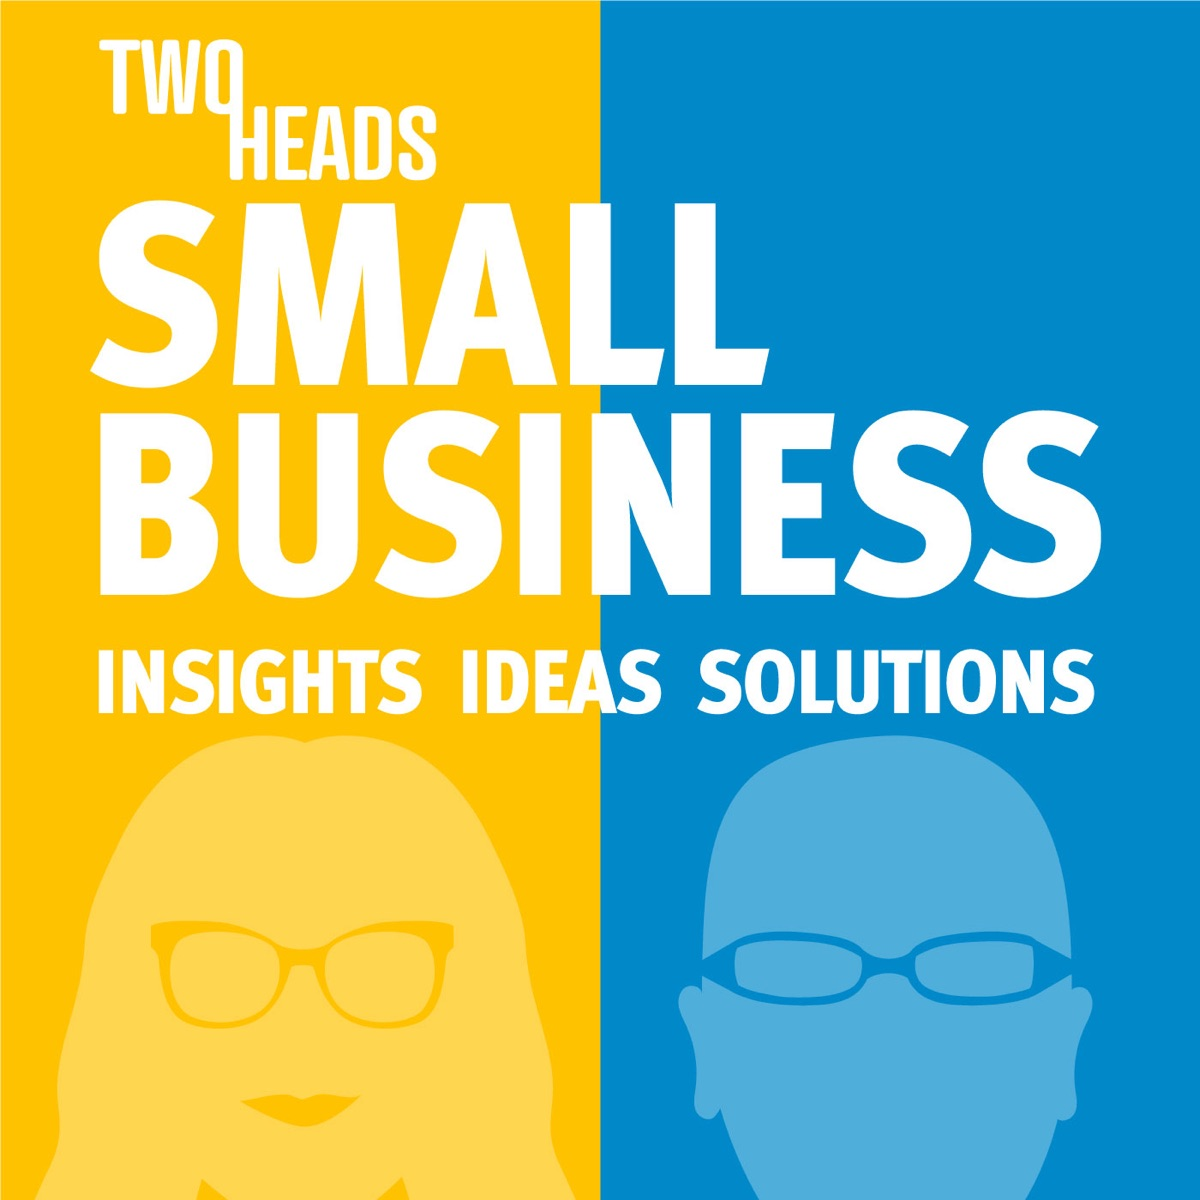 Small Business Insights, Ideas, & Solutions